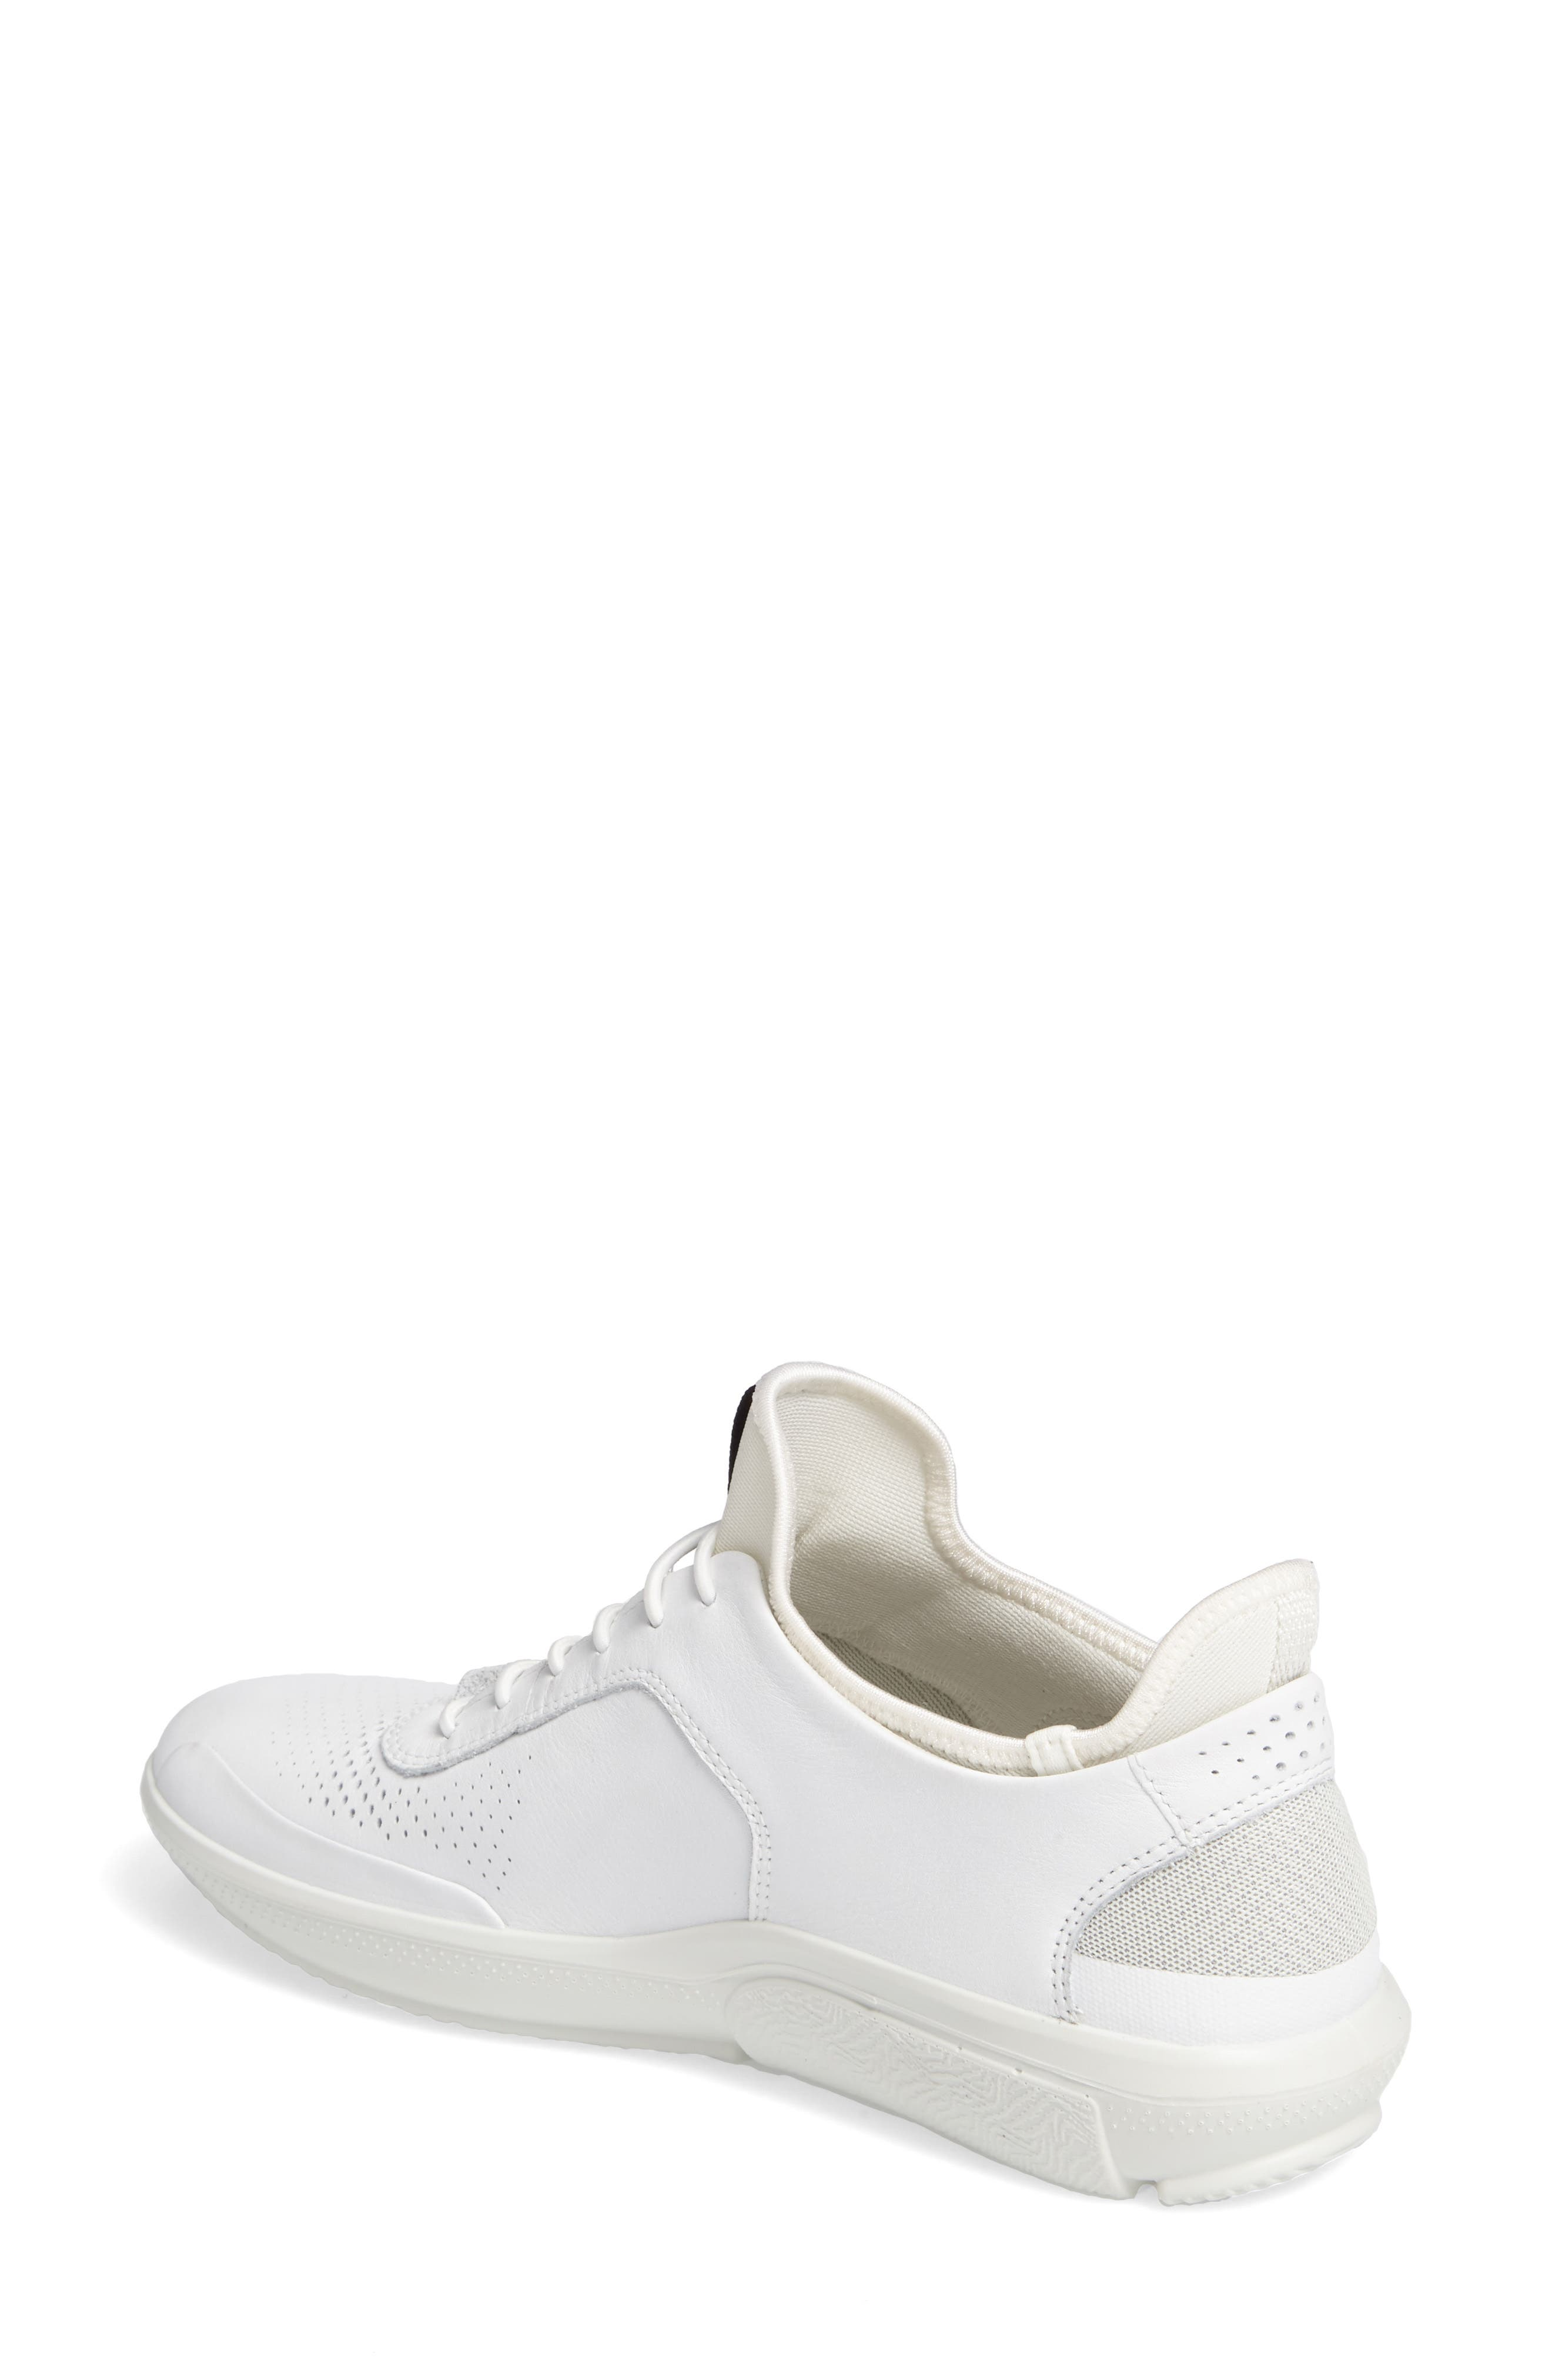 Intrinsic 3 Sneaker,                             Alternate thumbnail 2, color,                             White Leather